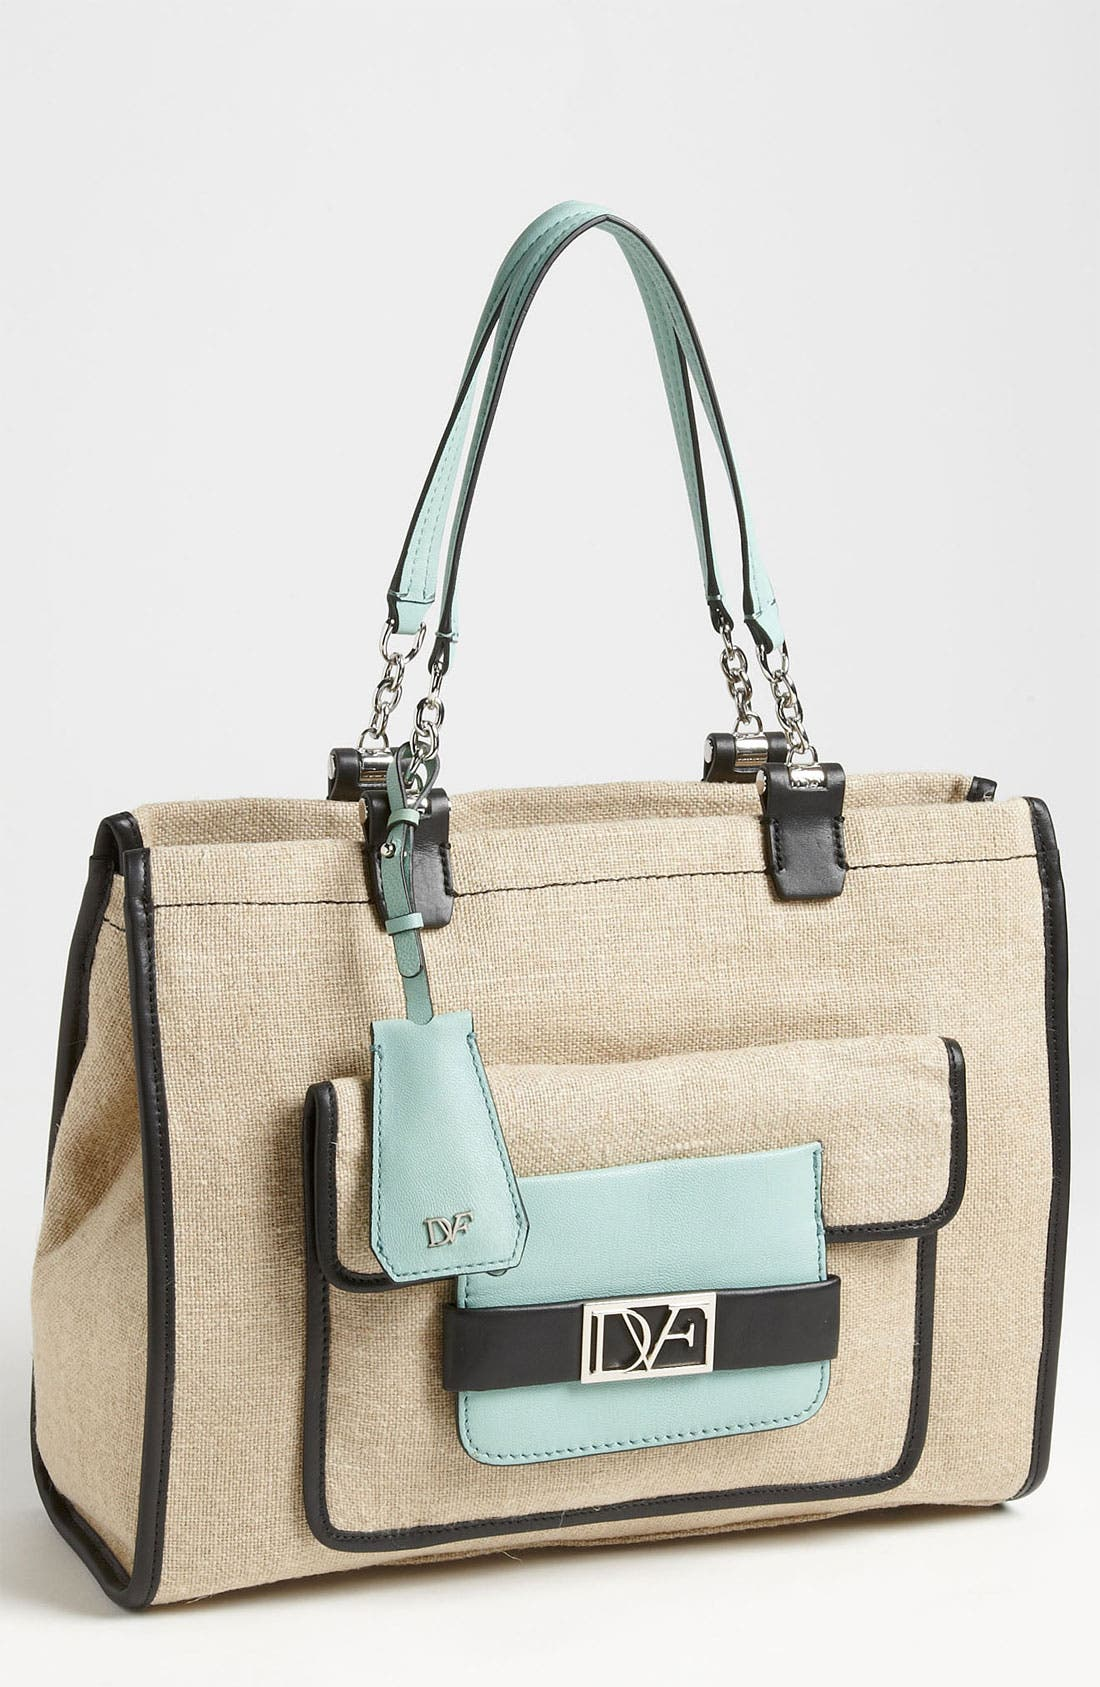 Alternate Image 1 Selected - Diane von Furstenberg 'Lola' Linen Handbag